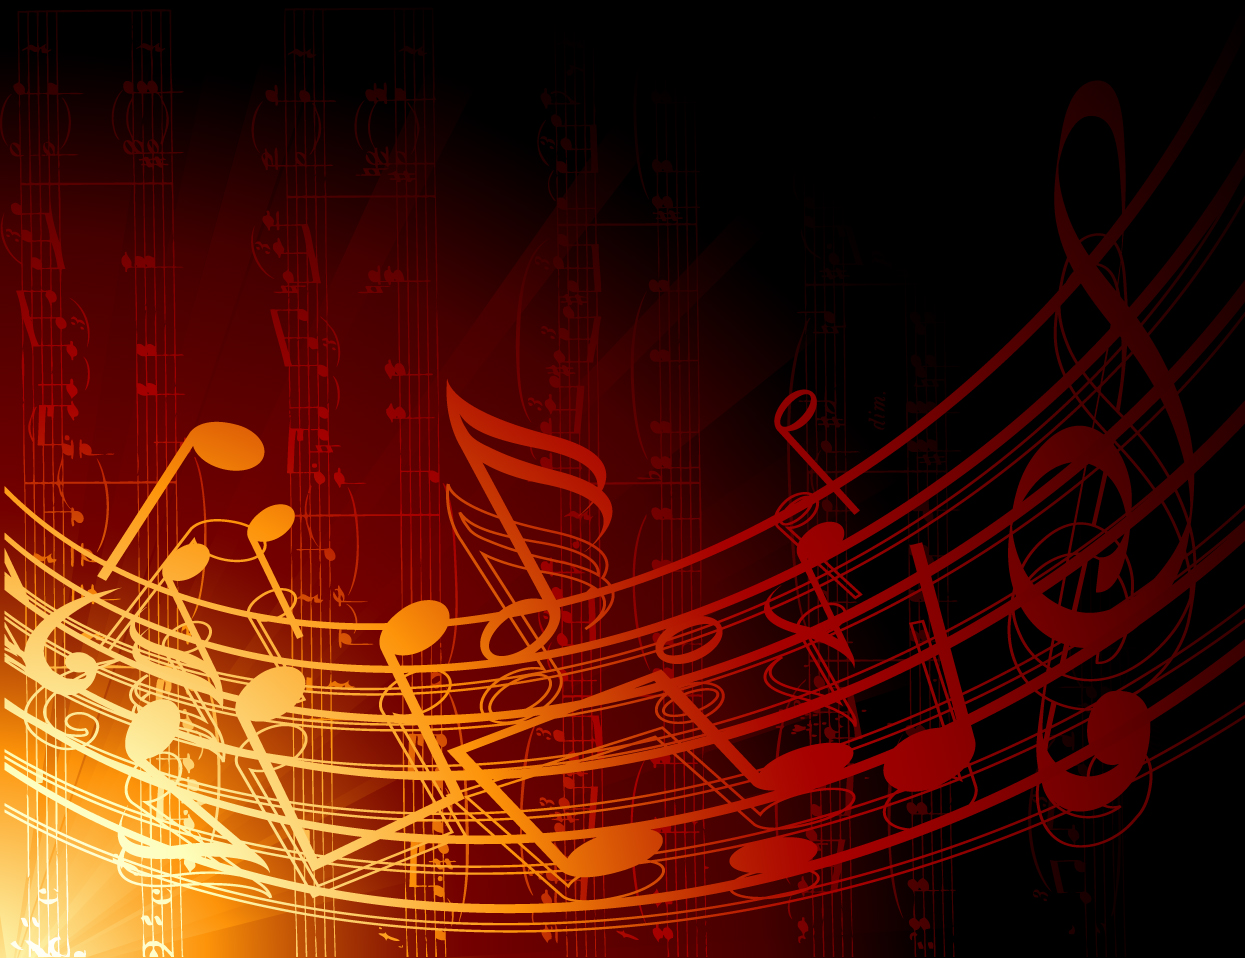 Music Abstract Backgrounds 4008 Wallpaper Cool Walldiskpapercom 1245x958